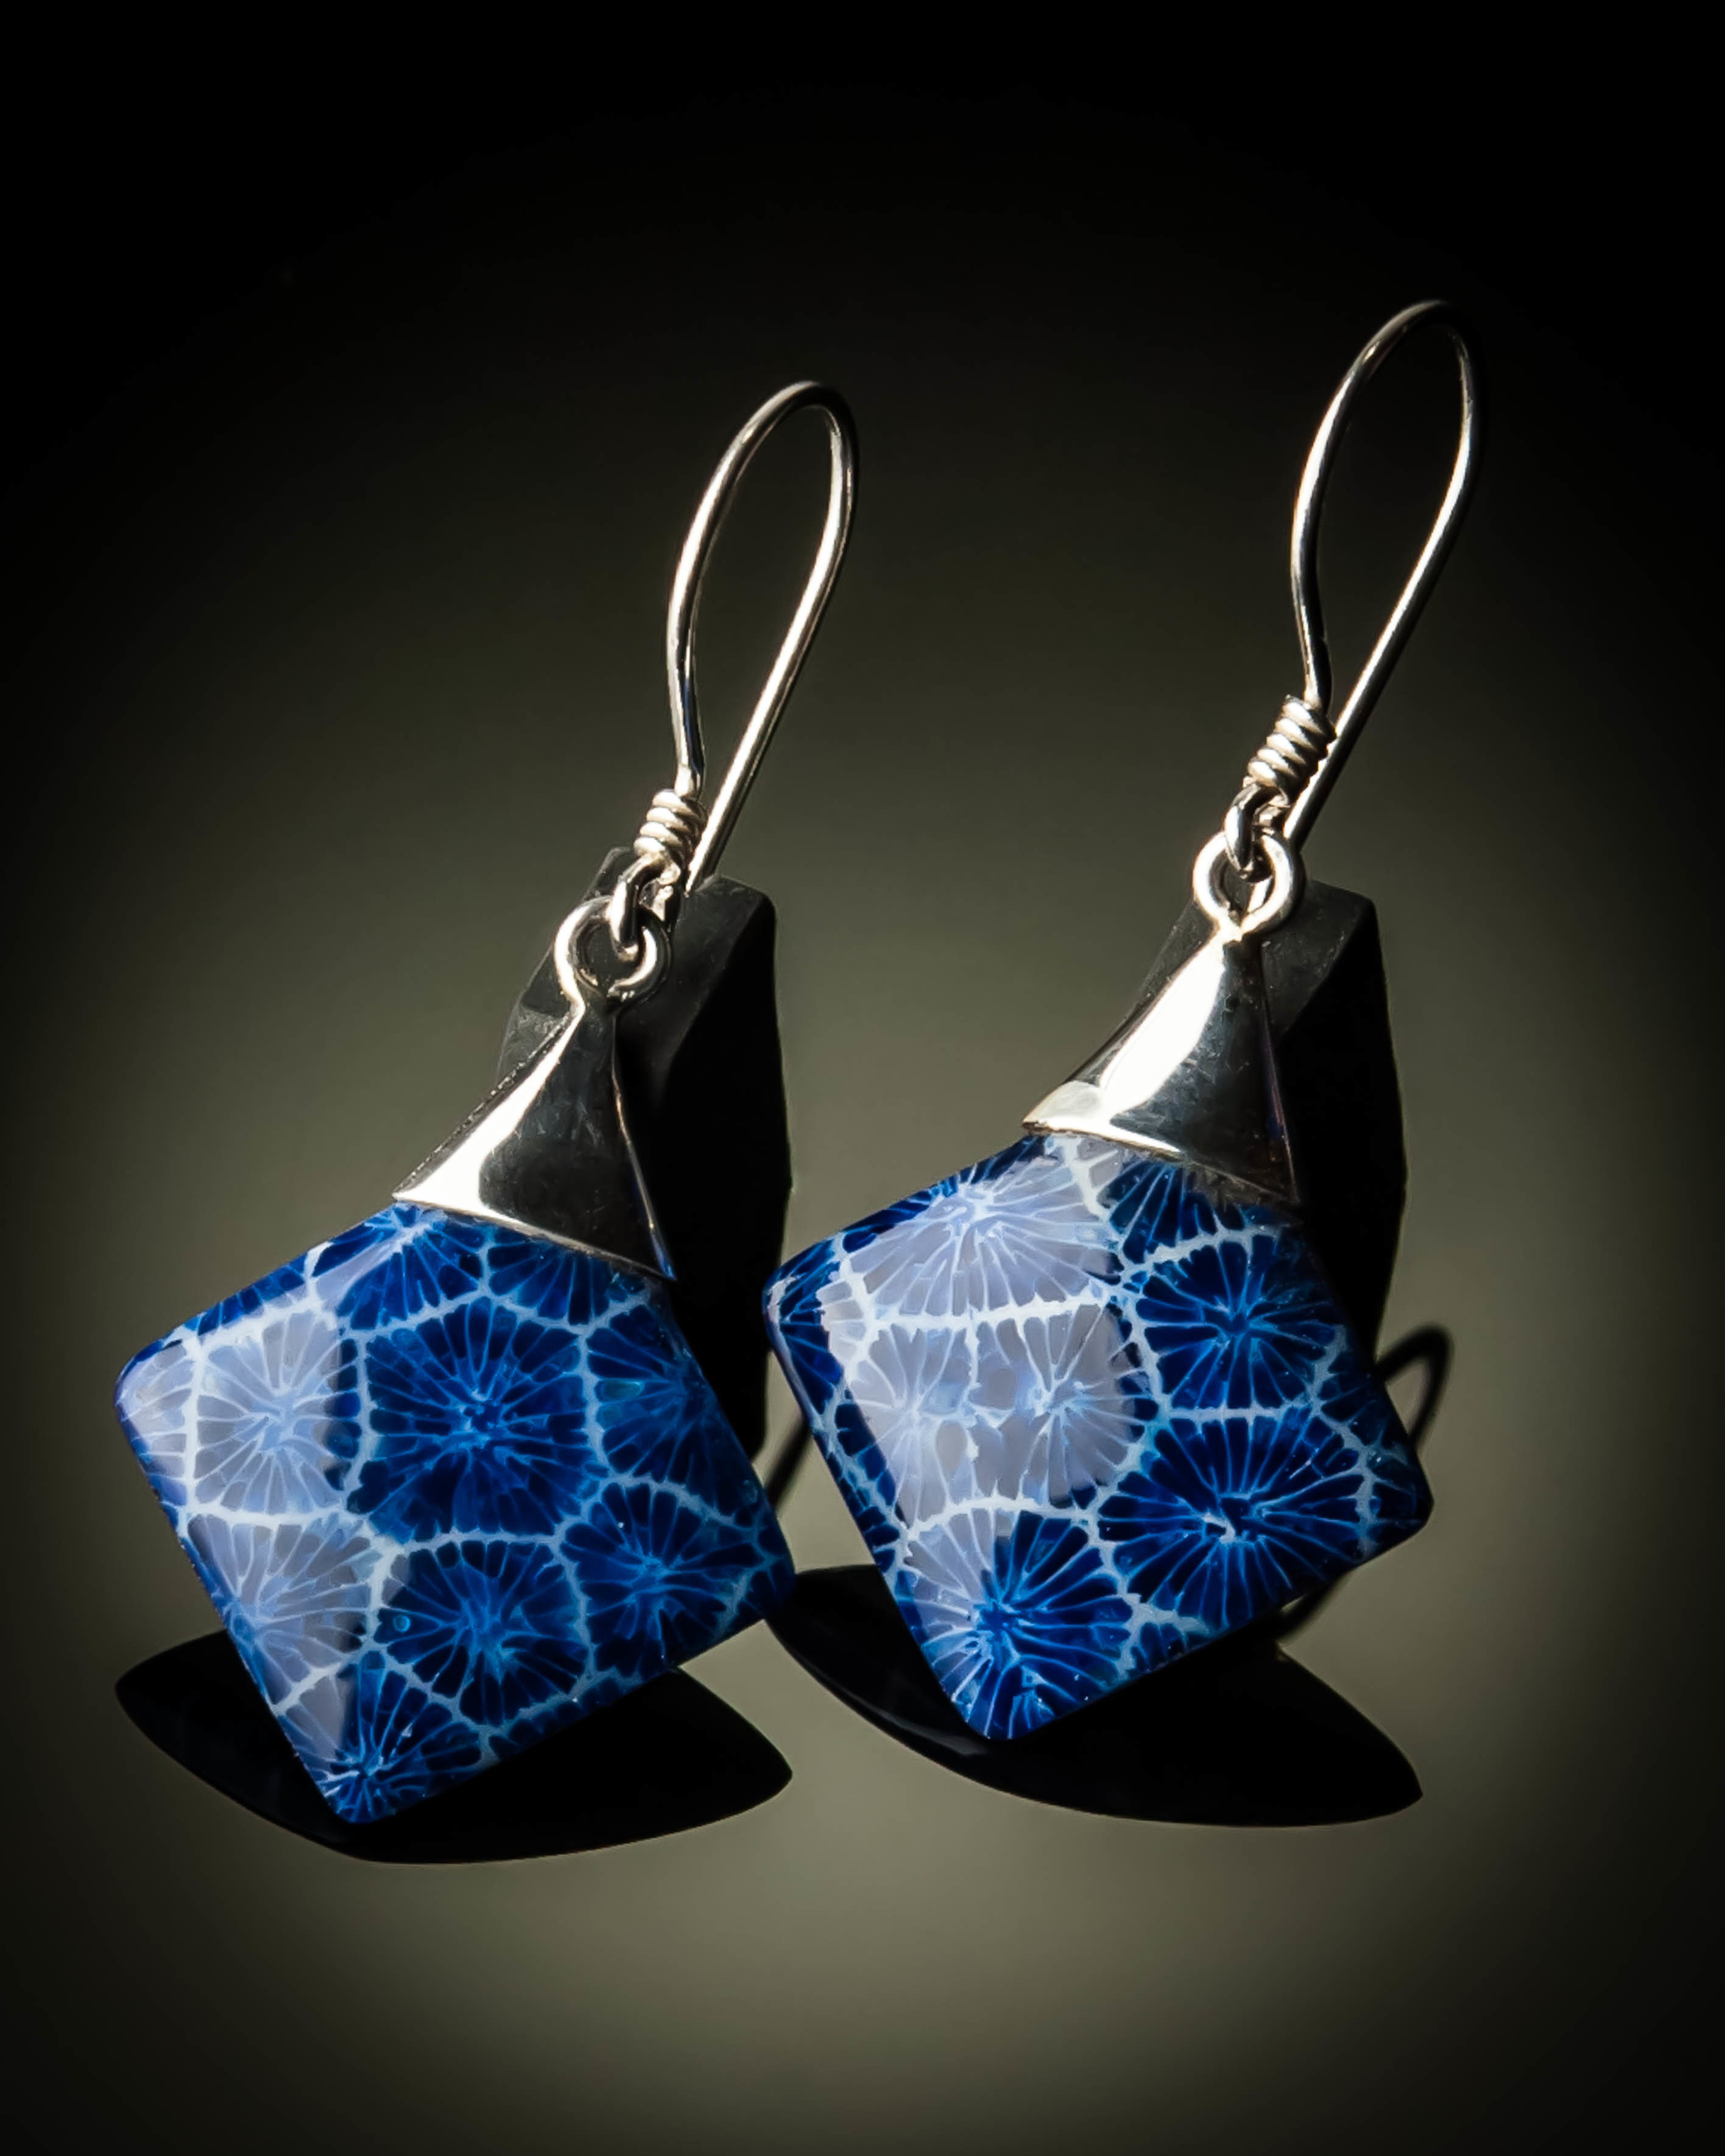 Blue Coral Diamond Shaped Sterling Silver Earrings ER-09012L-Blue coral